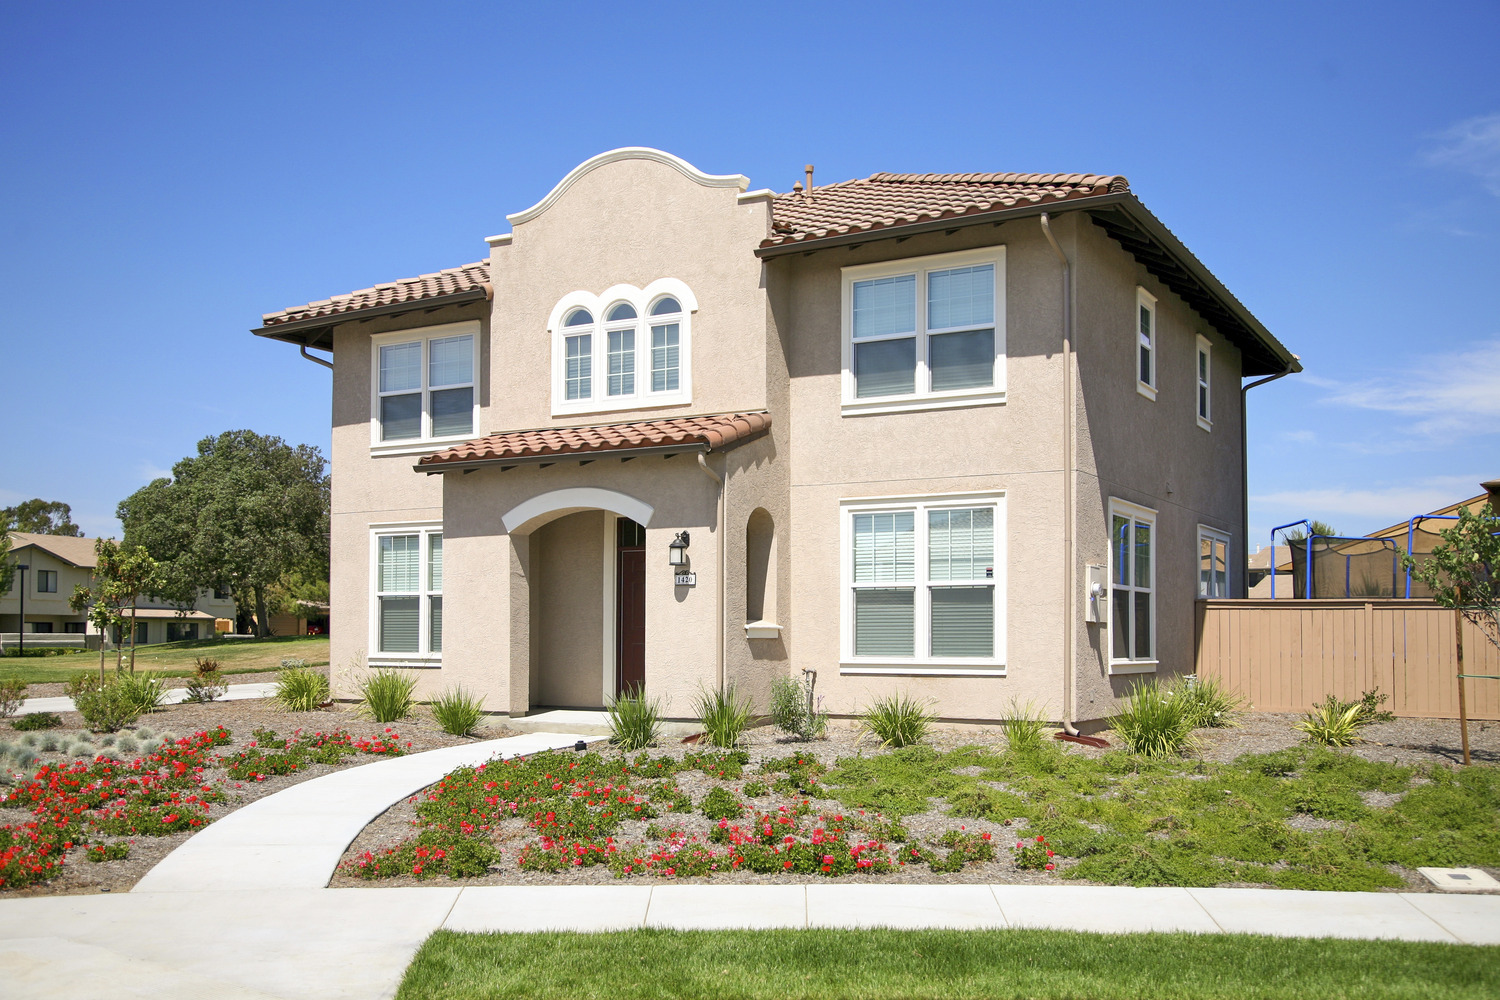 CBG builds San Diego Family Housing, a 12,698 Homes Across 24 Sites in California and Nevada in NV, CA - Image #4